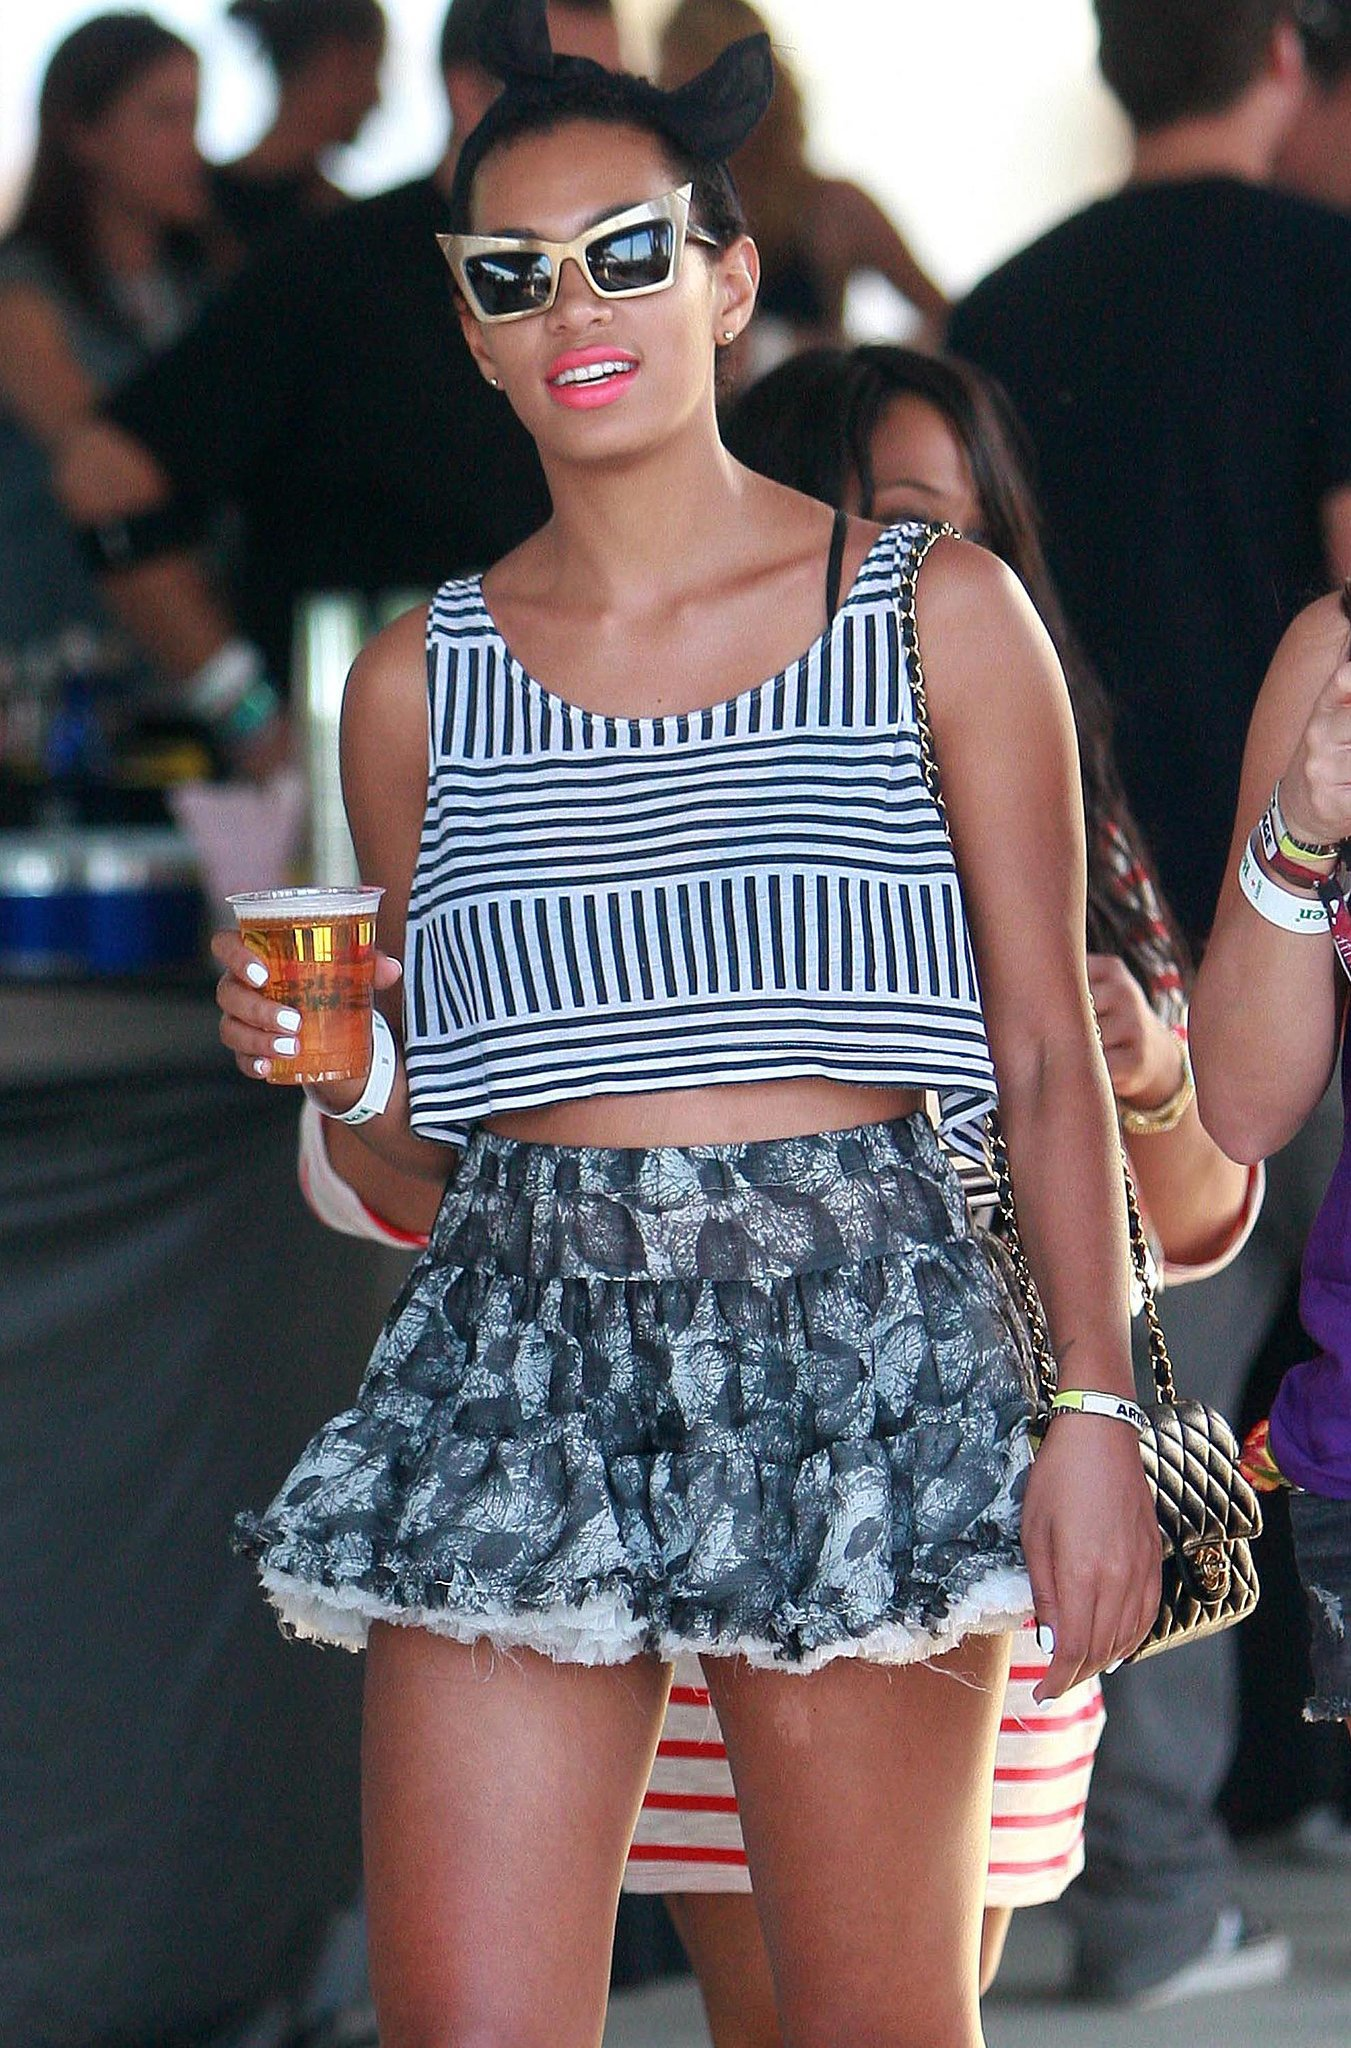 Solange Knowles picked up a cold beverage in 2010.